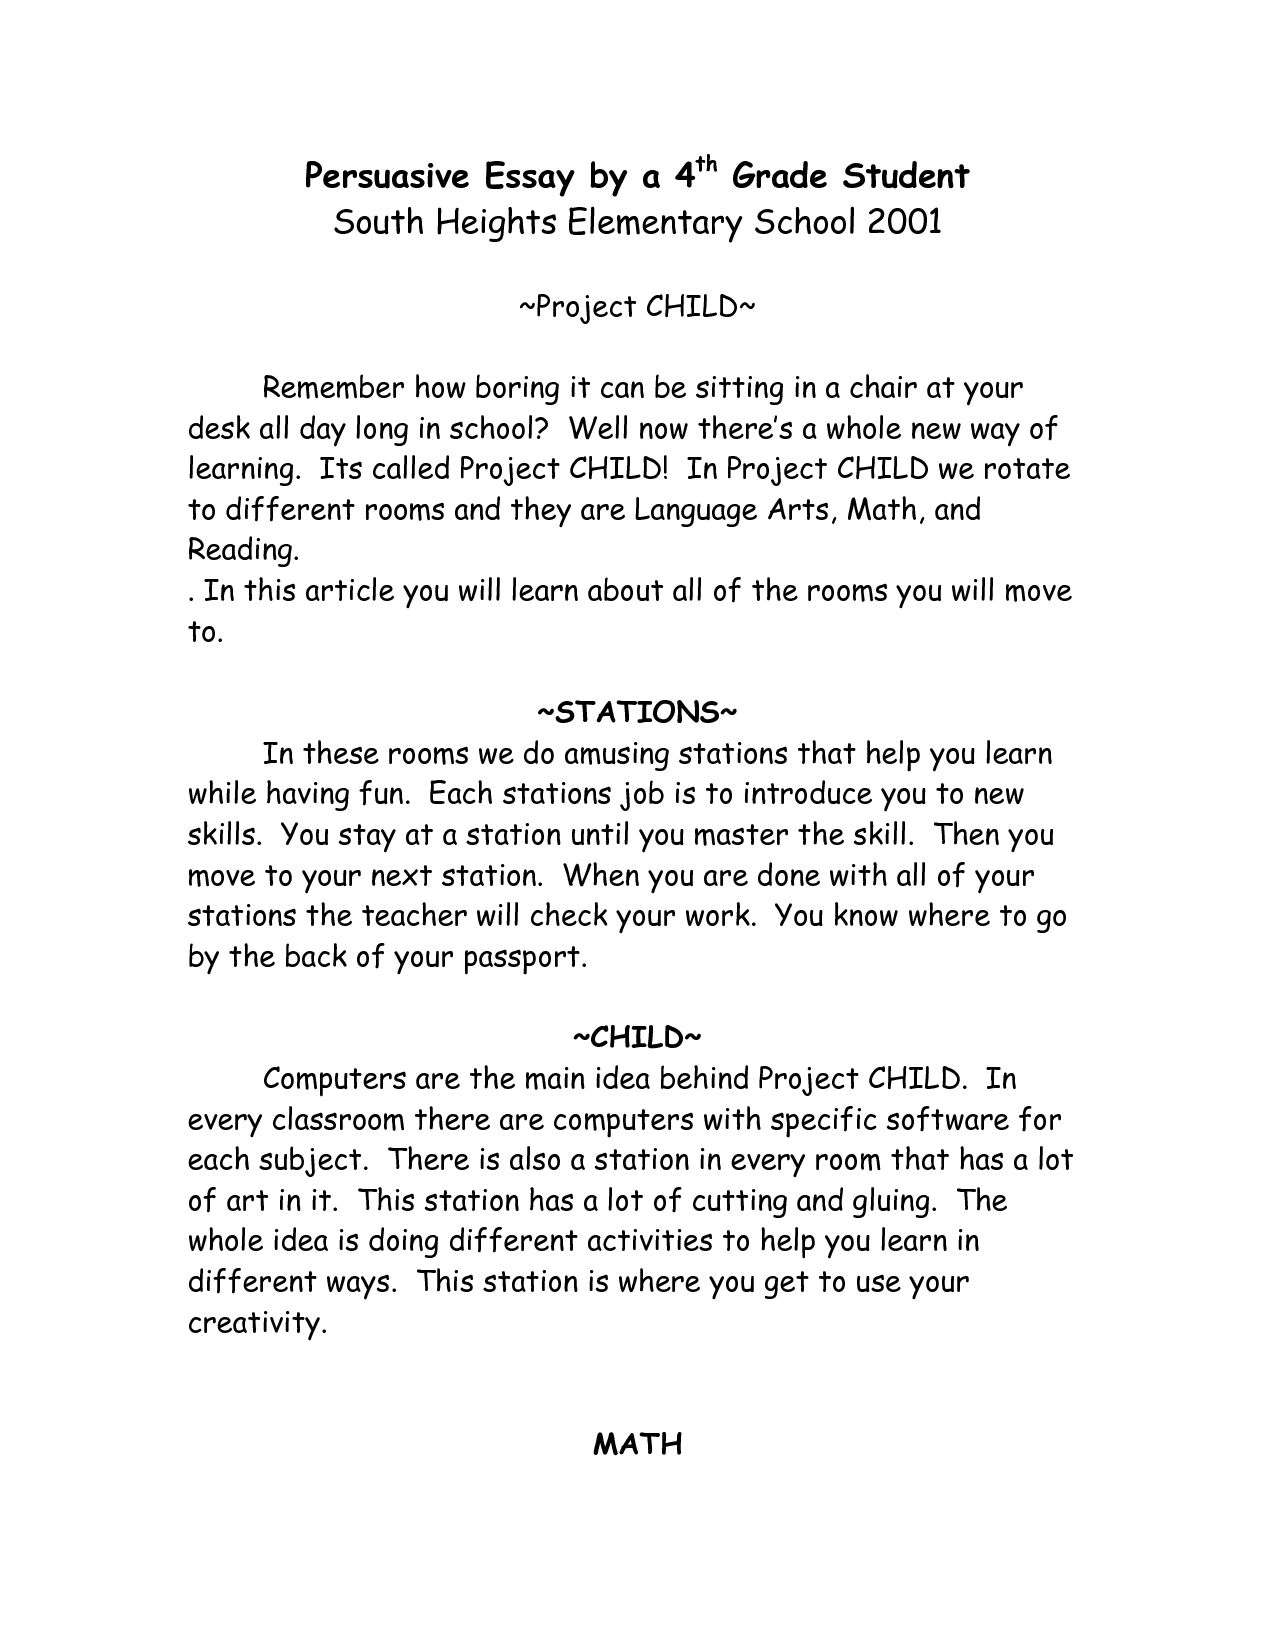 014 How To Start An Essay 2nmmxqusgx Amazing Analysis On A Book Ways With Question About Two Books